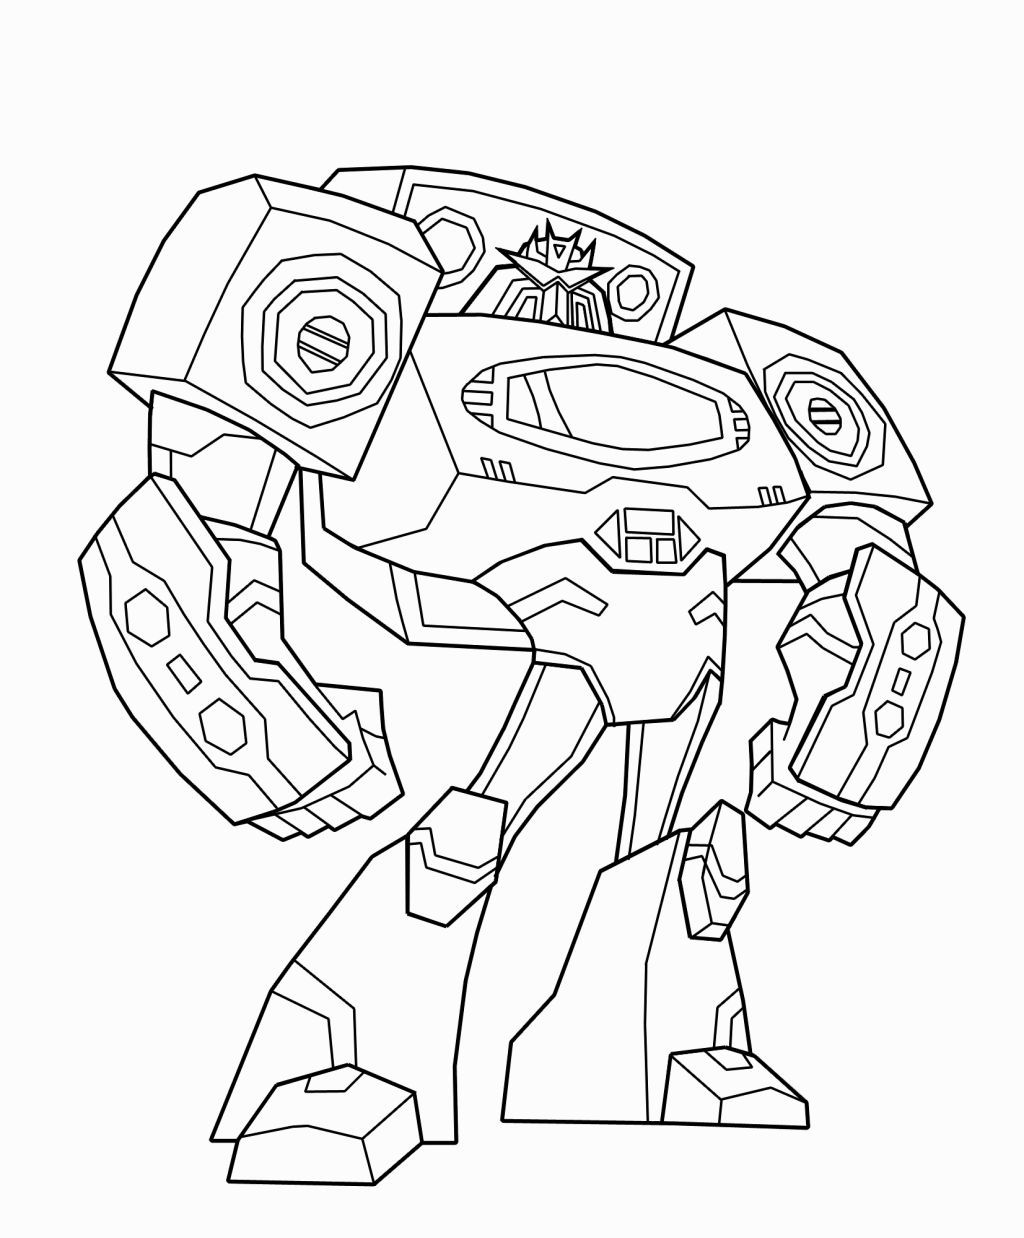 Transformers Animated Coloring Pages | Coloring Pages | Pinterest